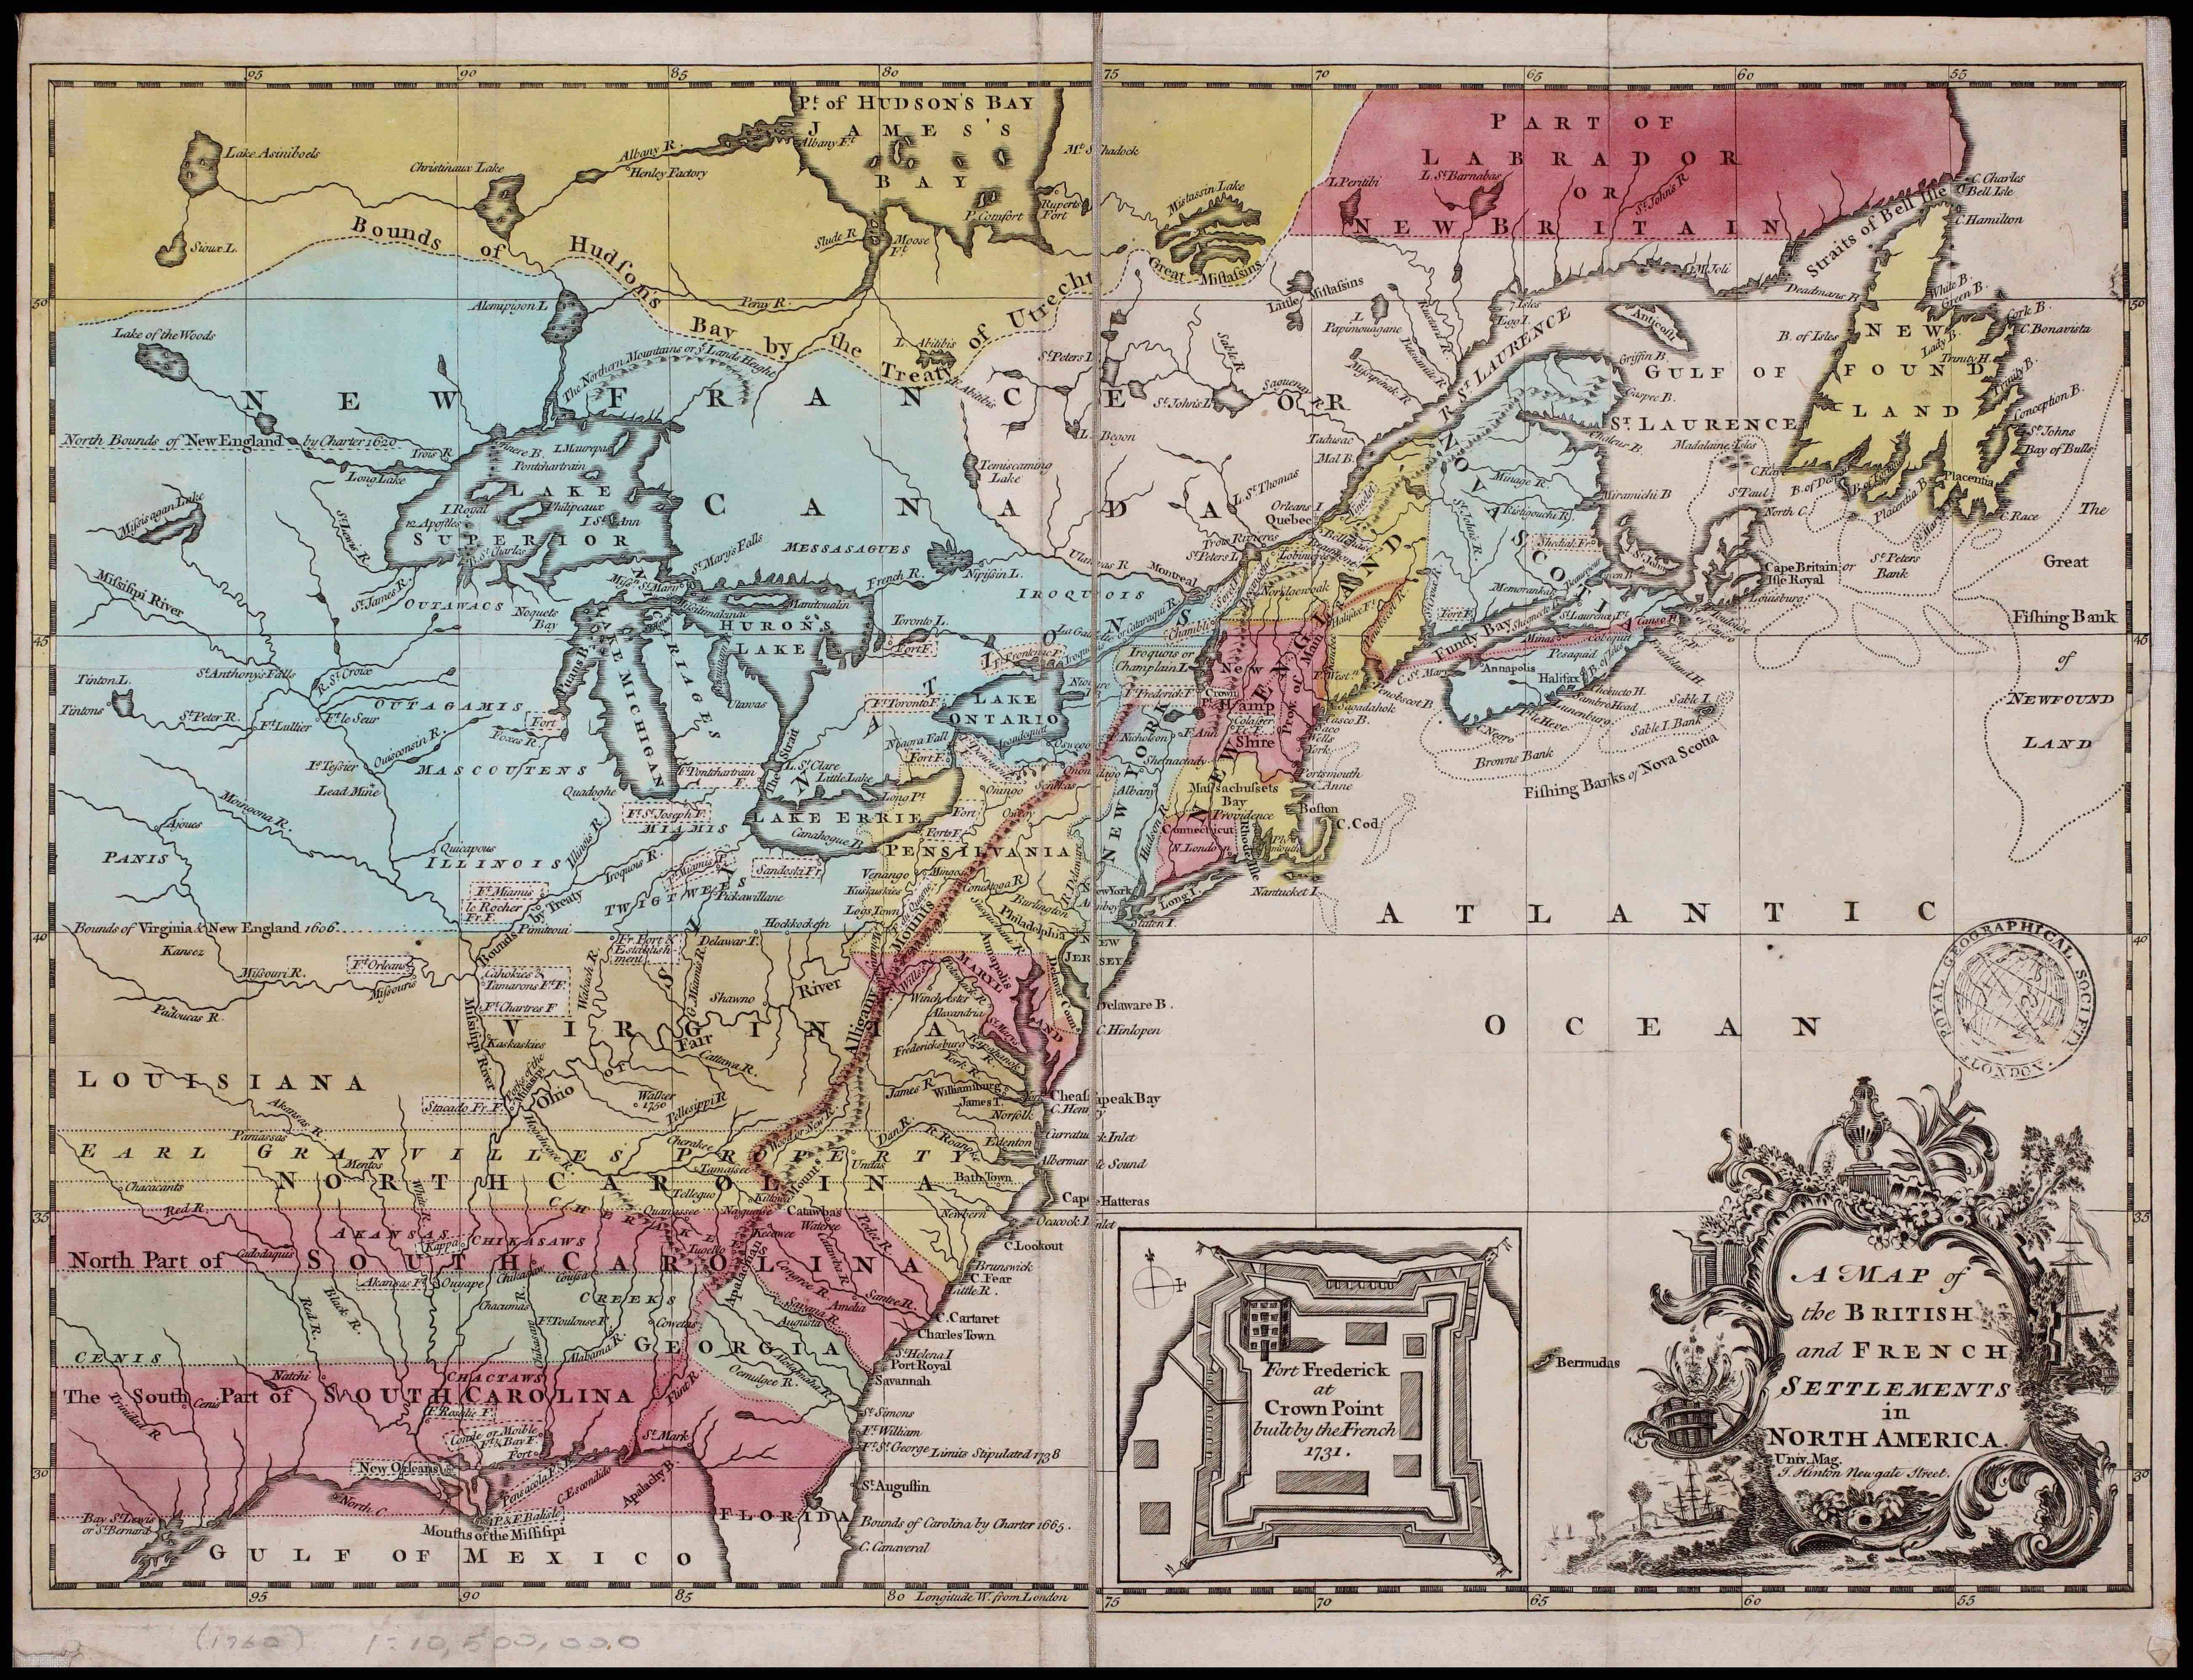 1755 map of North America with shading and erroneous labels